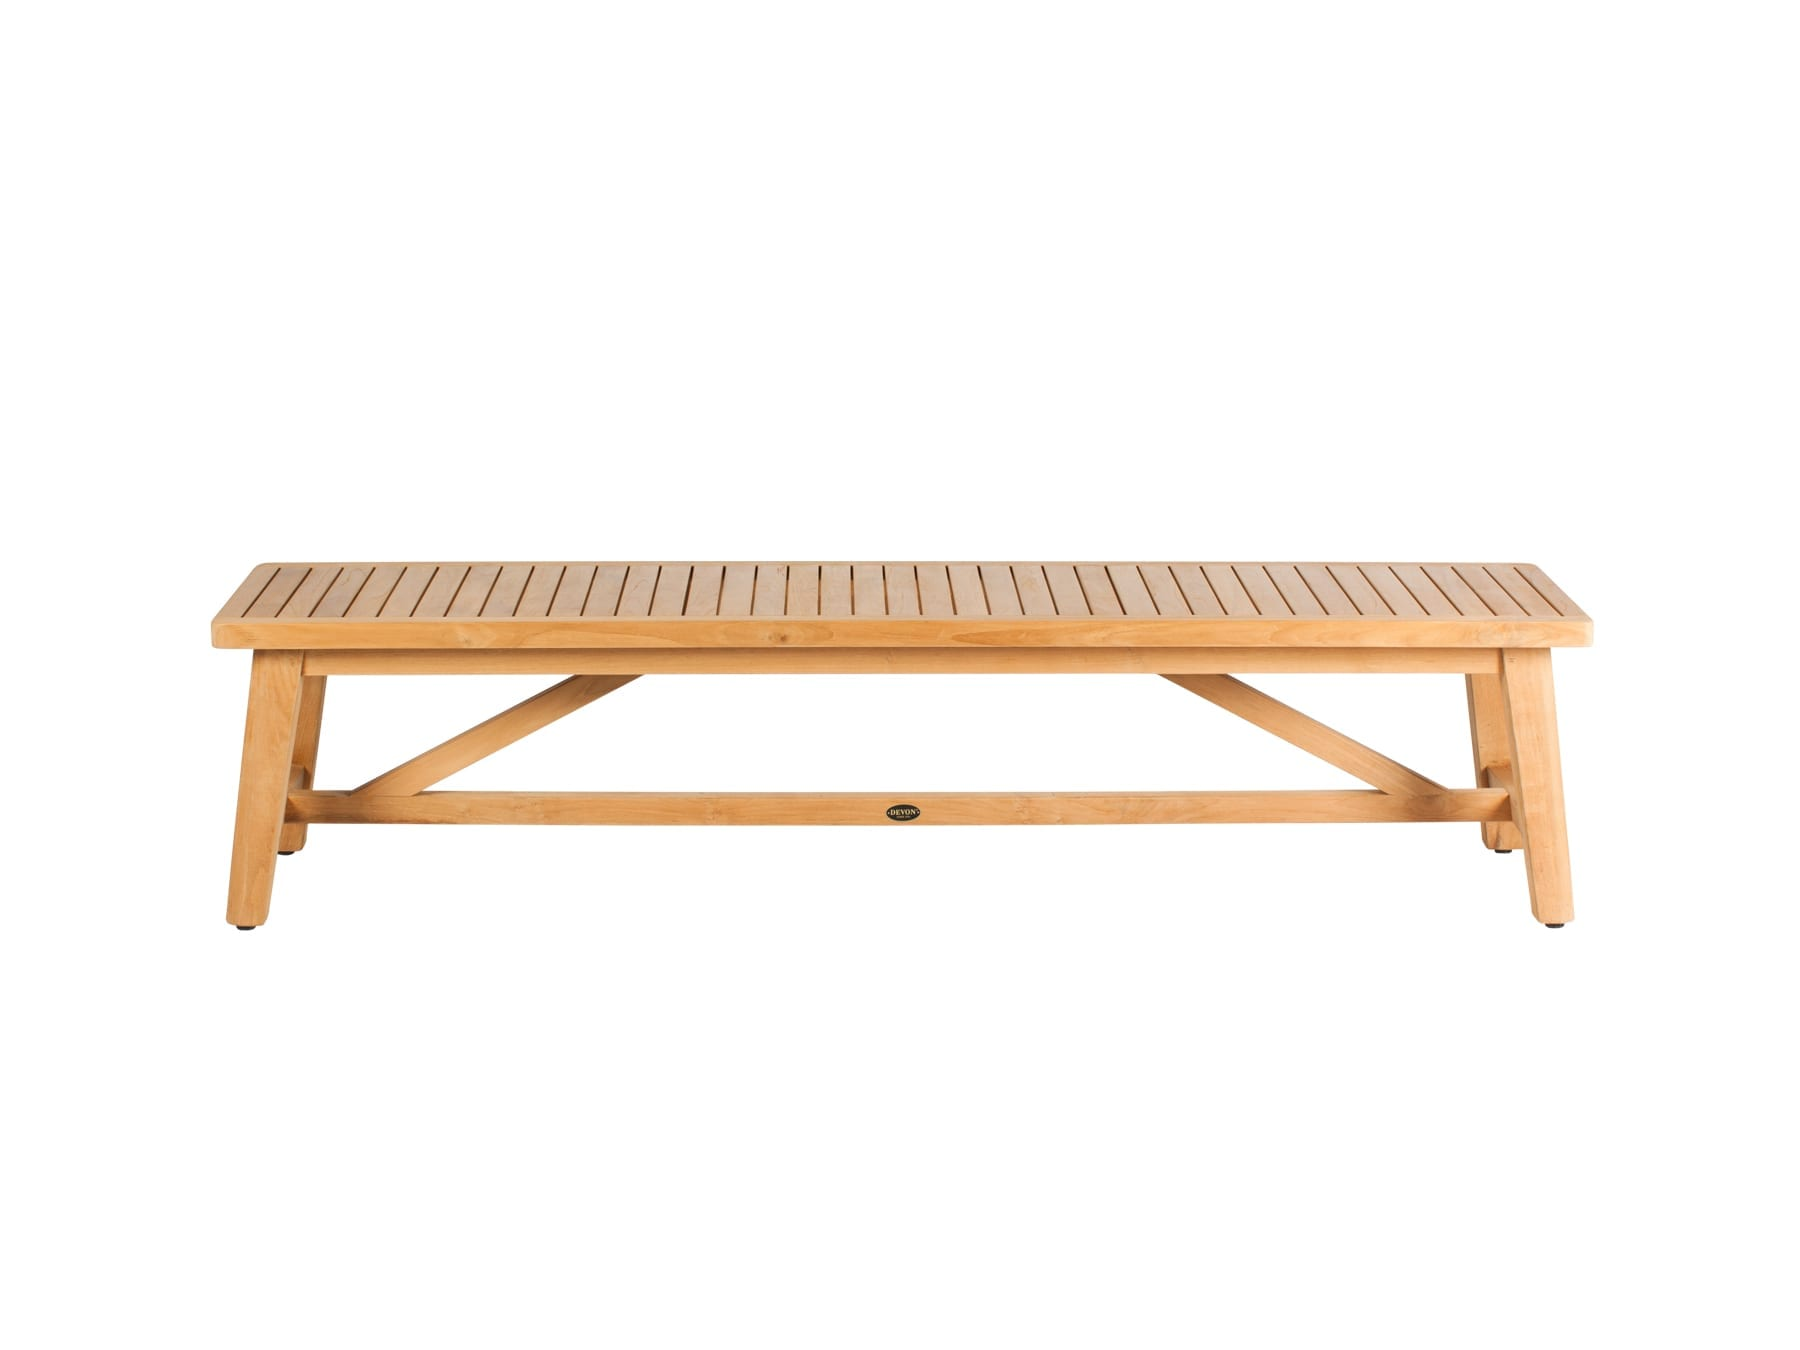 Devon Cheviot Bench available at McKenzie & Willis